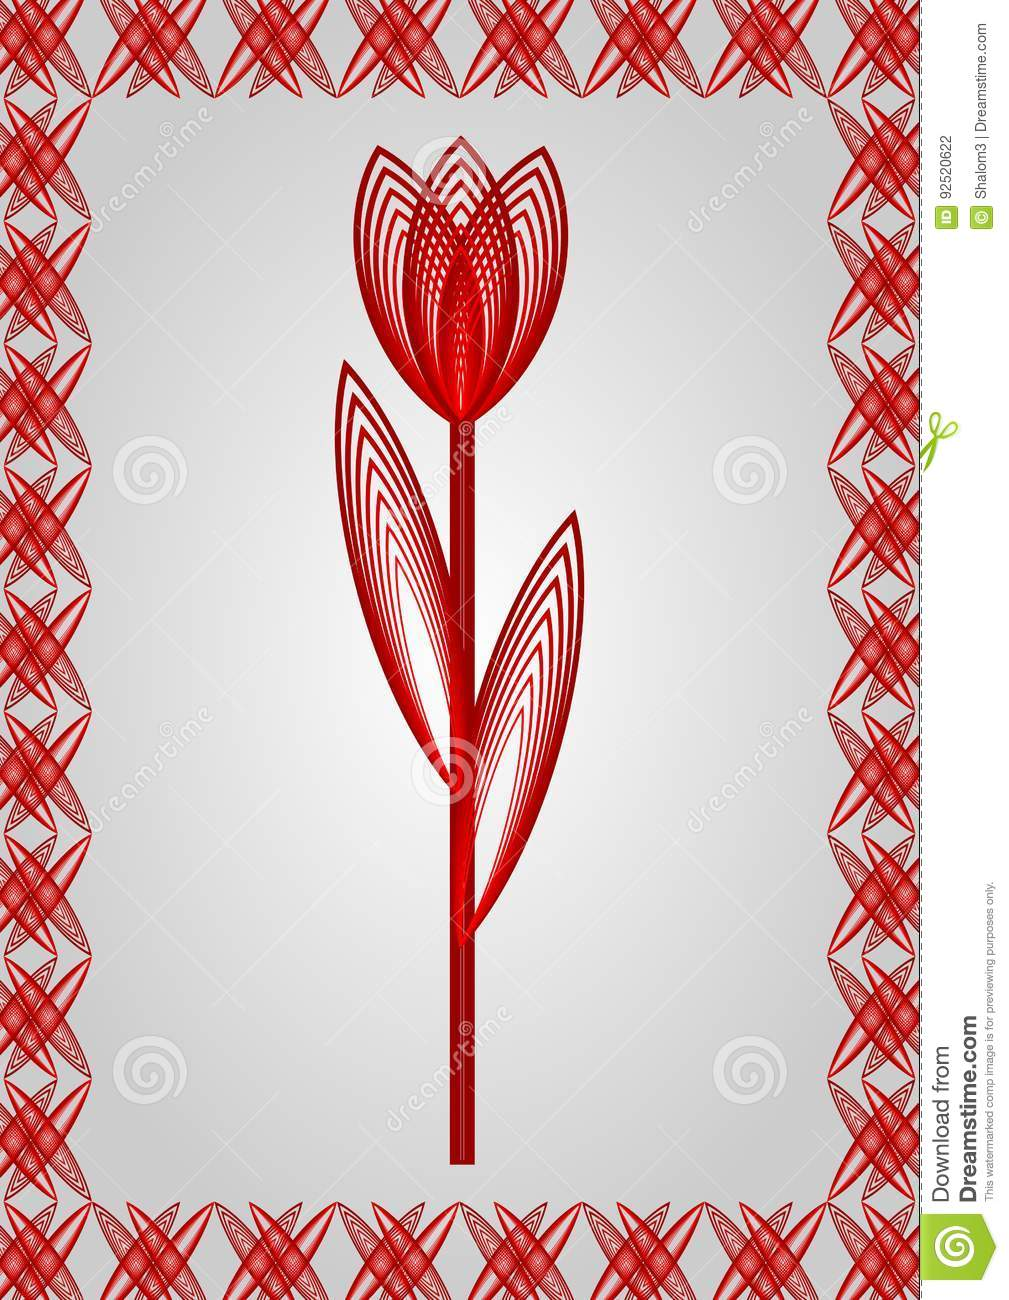 Drawing Lines With Gradients : Outline stylized red tulip in frame drawing on grey